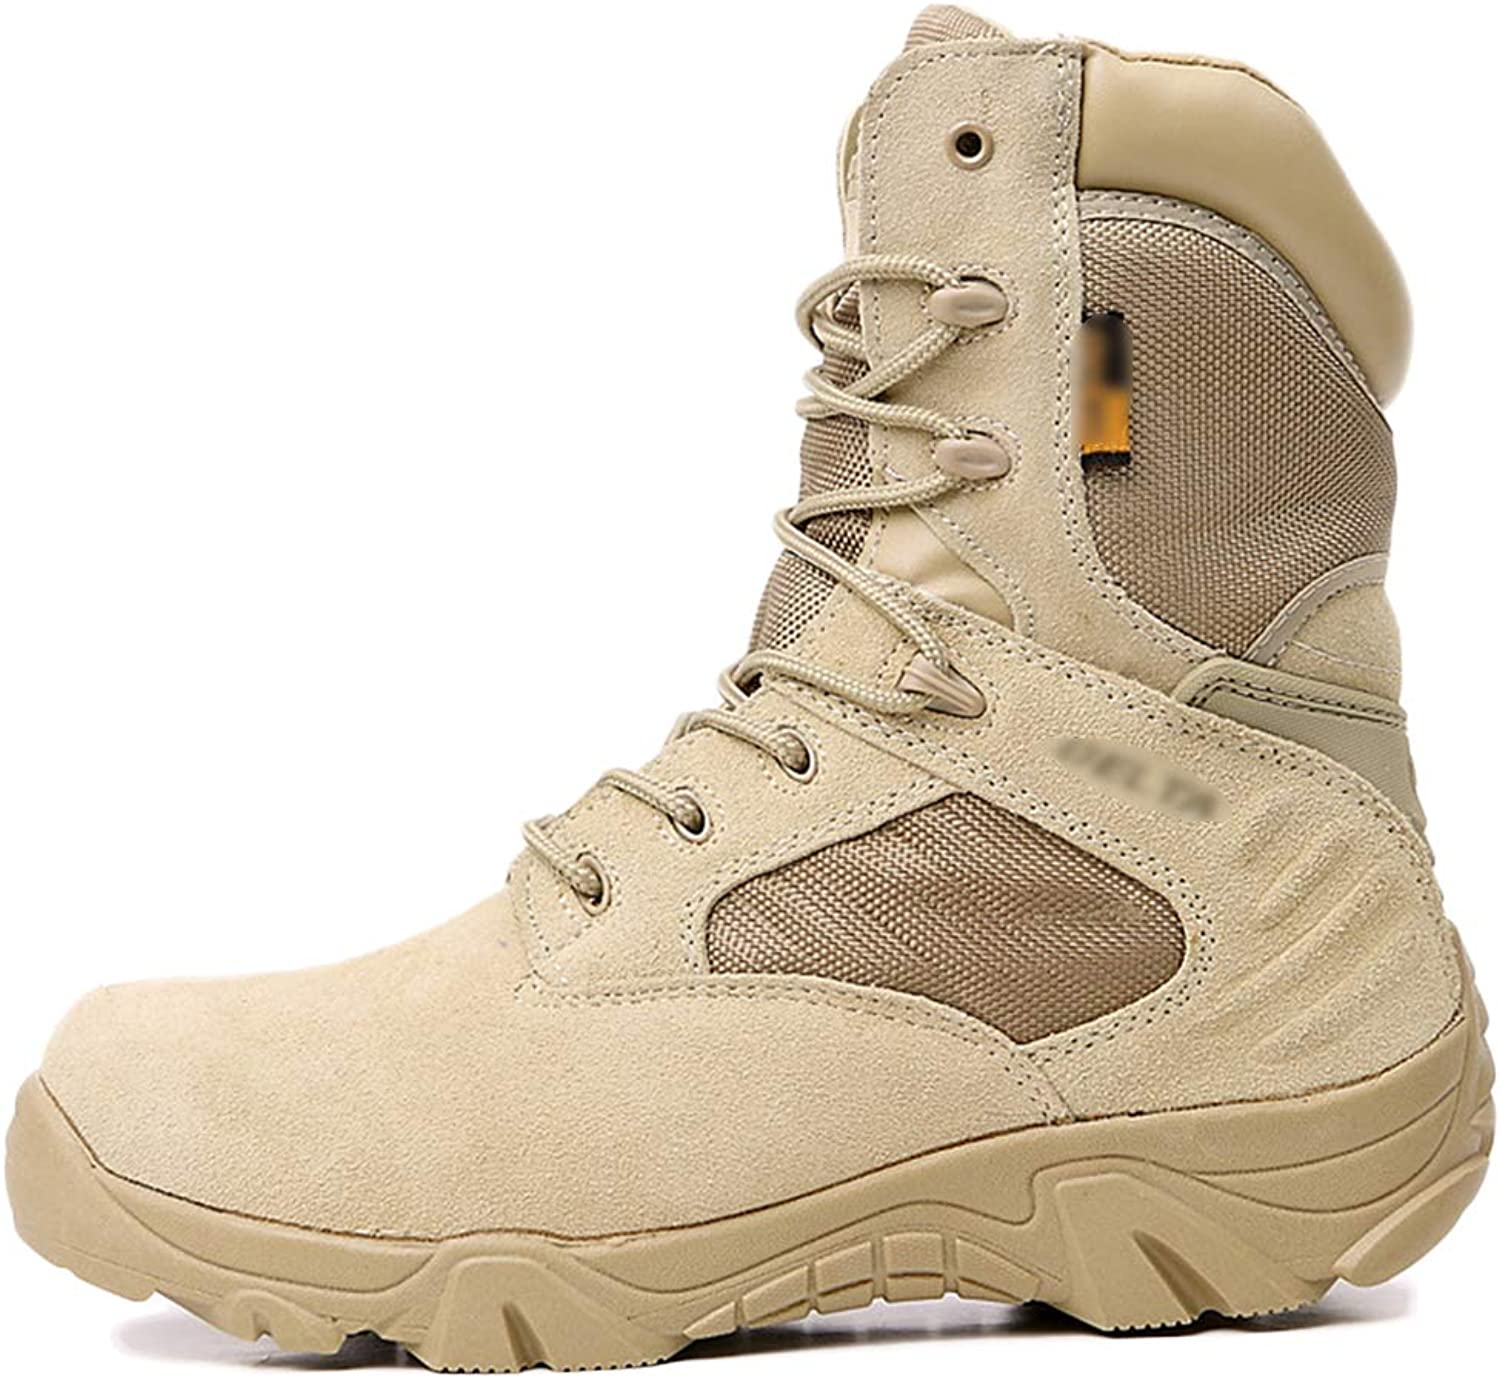 Liabb Mens Desert Military Combat Boot Delta Special Forces Security shoes Army Armed Tactics Boots Outdoor Mountaineering Hiking shoes,Beige,42